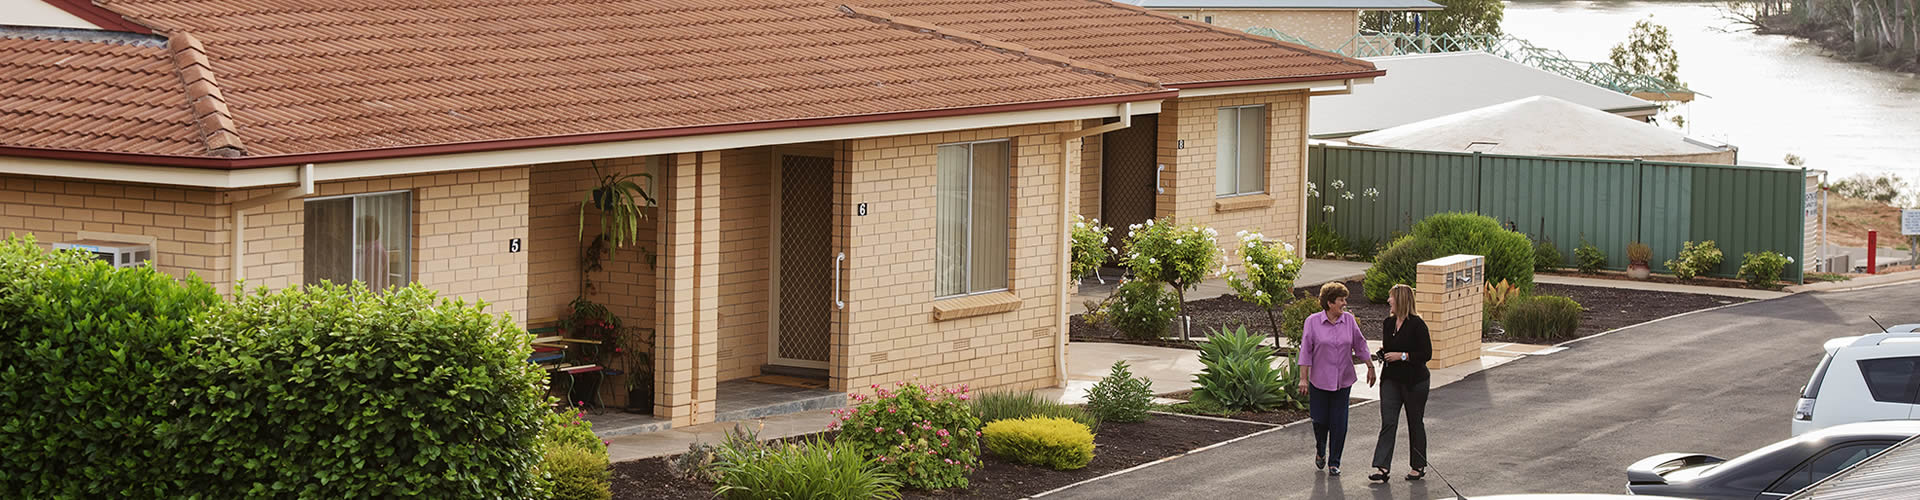 Independent Living Units Loxton - The Cottages